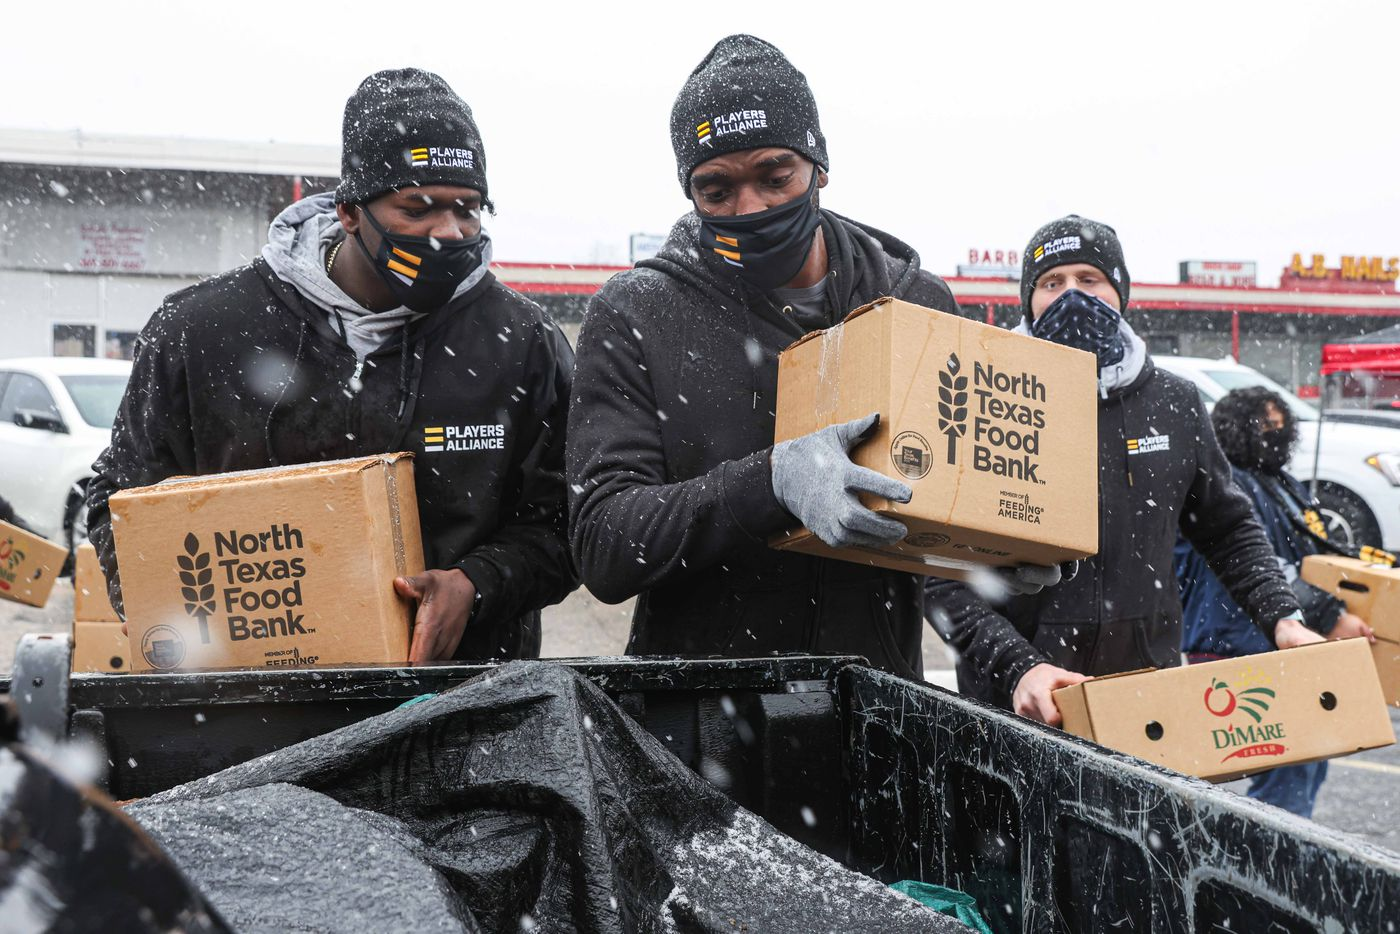 From left, pitchers for the Texas Rangers, DeMarcus Evans and Taylor Hearn, place boxes of food in the truck of a car as part of the donations made by the MLB Players Alliance in Oak Cliff on Sunday, January 10, 2021.